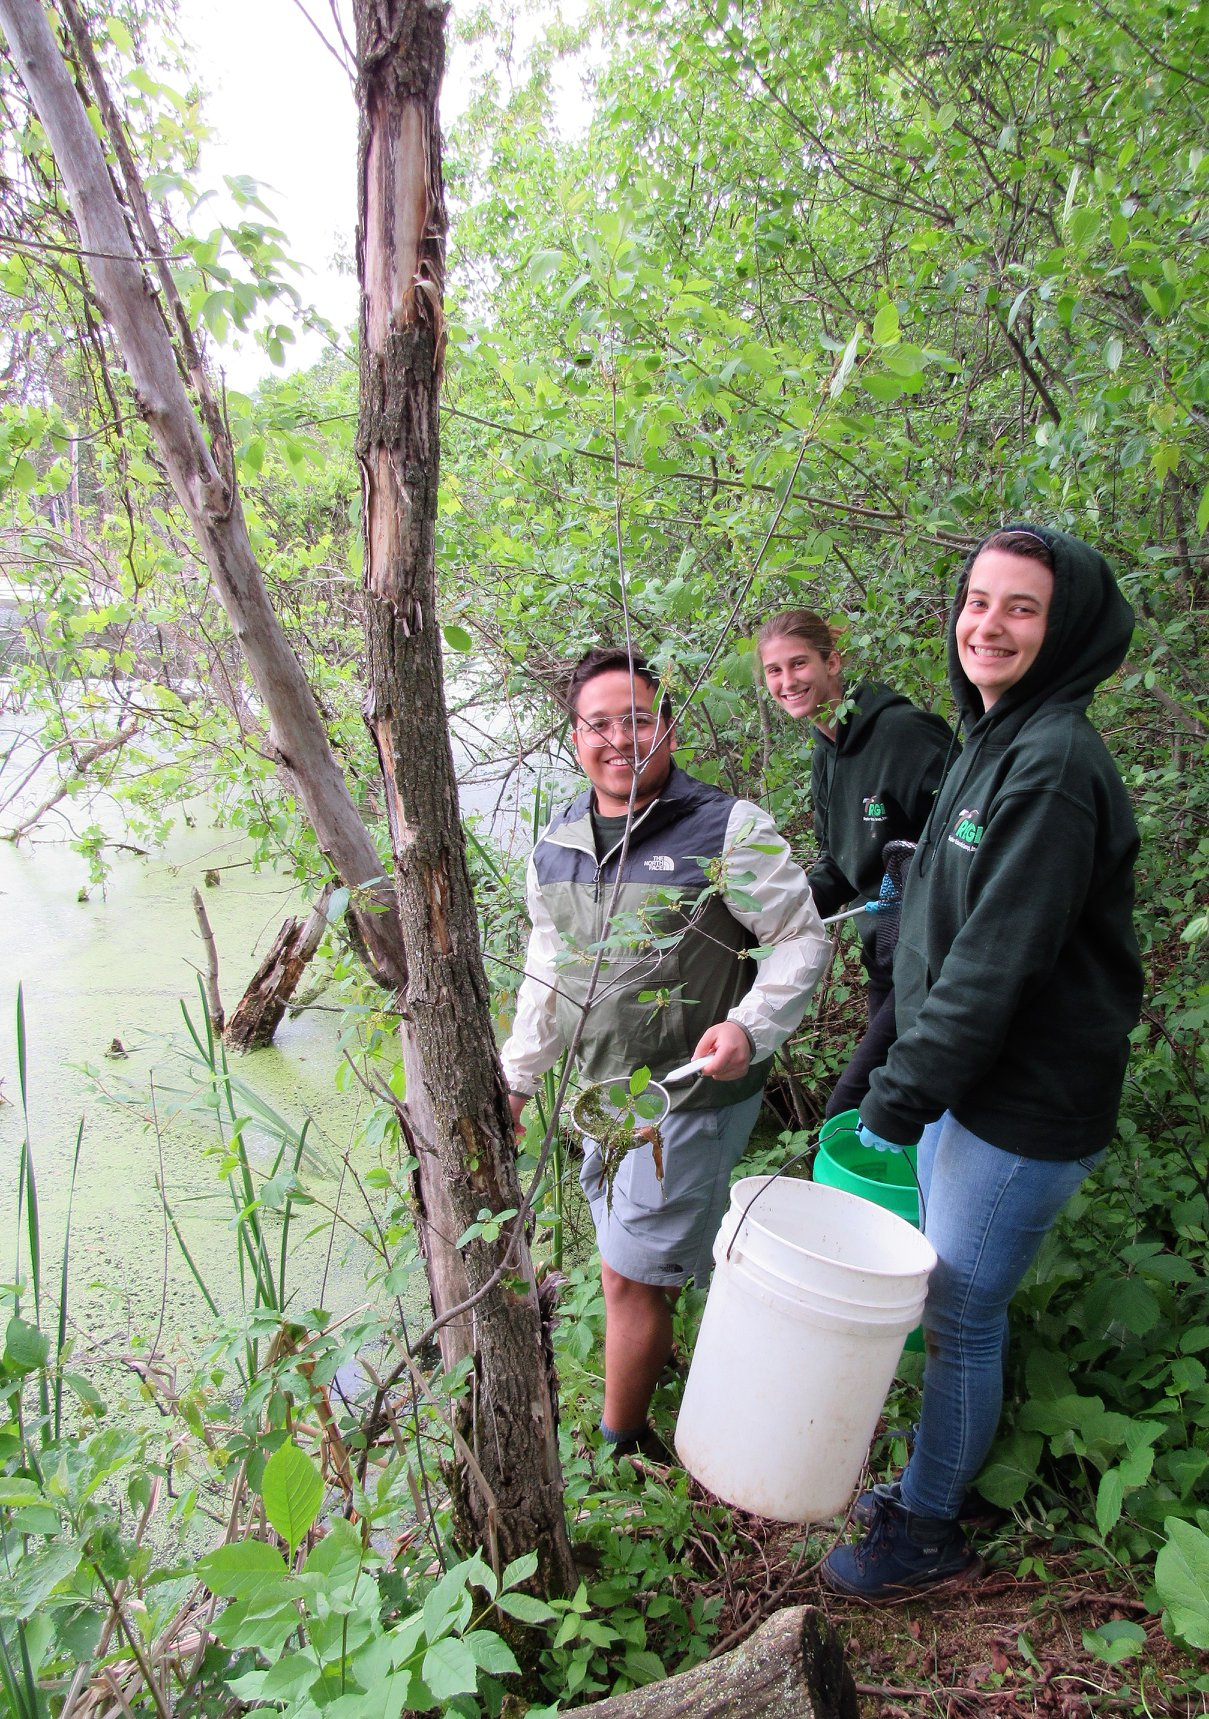 Our intrepid interns, sally forth in search of fresh, healthy duck weed for our patients.